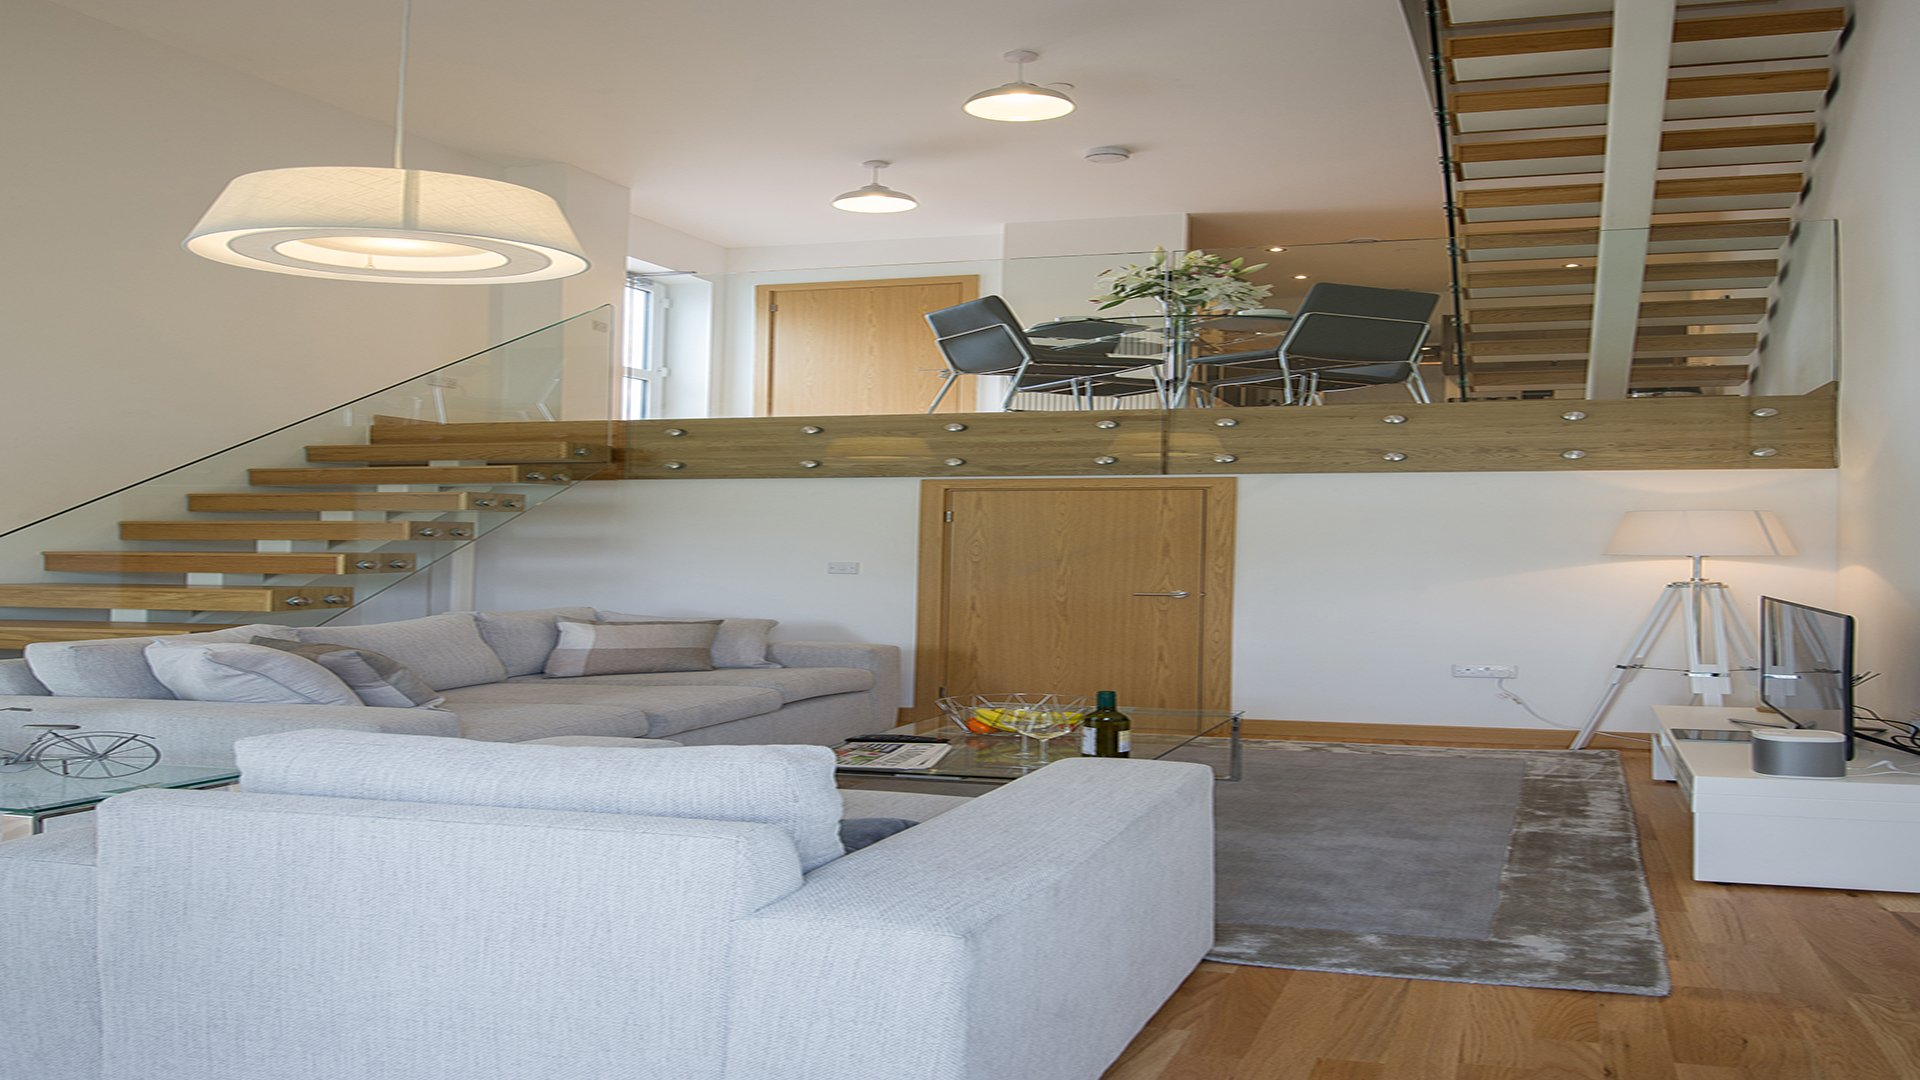 Cambridge-Short-Let-Apartments-avilable-Now!!-Book-Corporate-Serviced-Accommodation-in-Cambridge-today!-Free-Cleaning,-Wifi-&-Netflix!!-Pet-Friendly-|-Urban-Stay